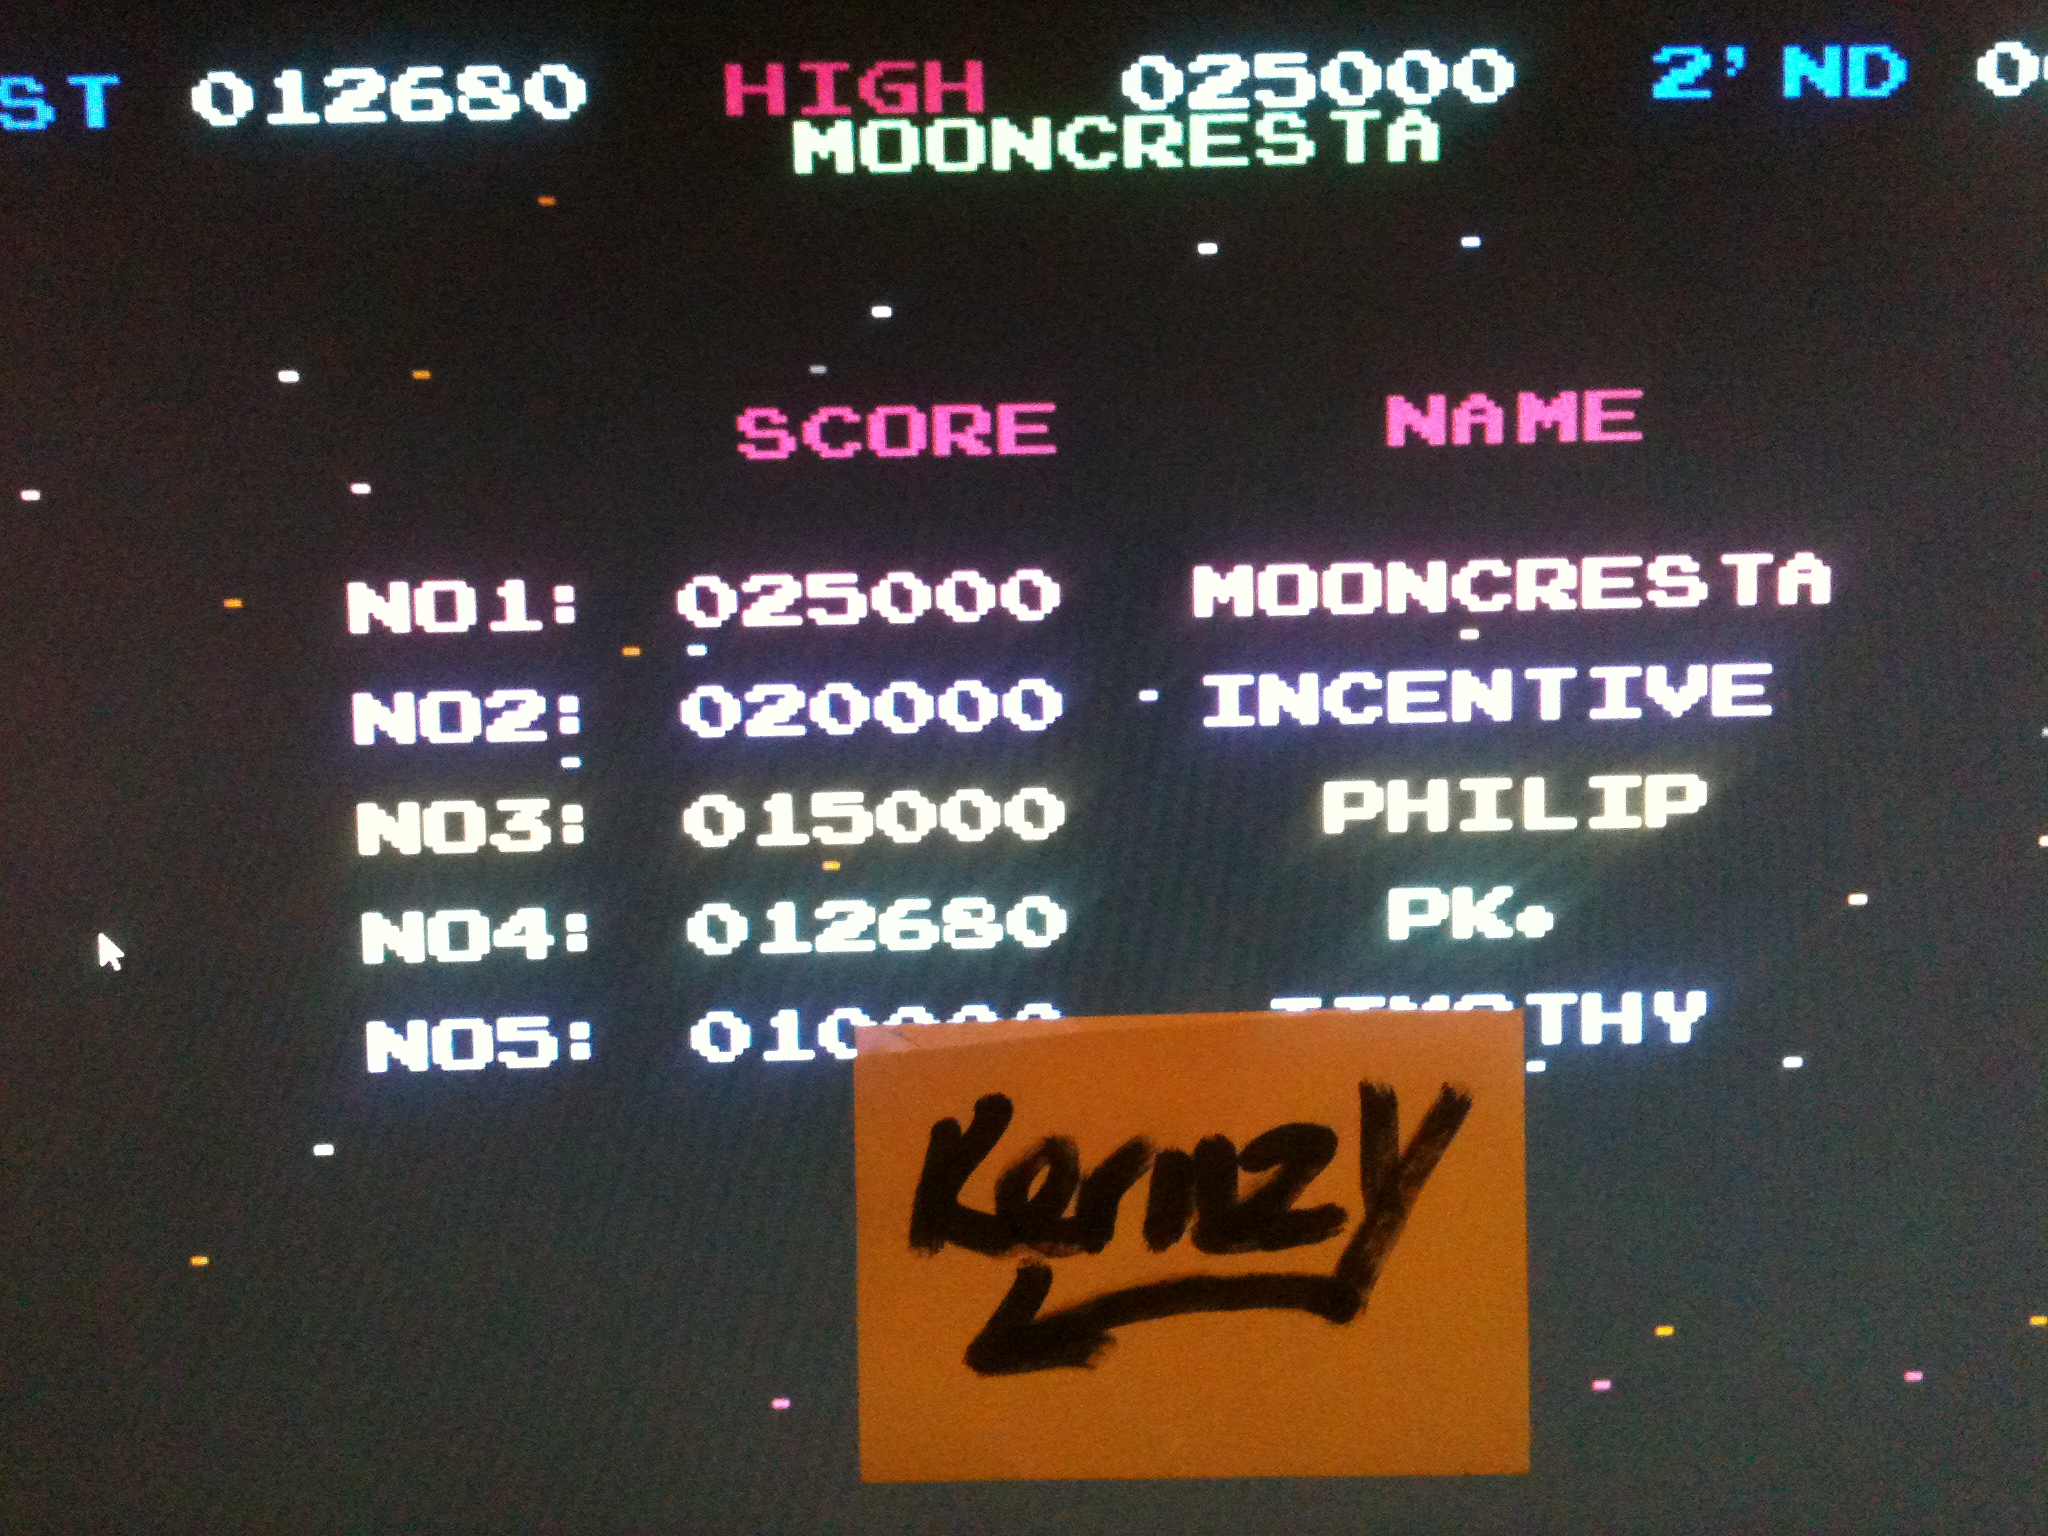 kernzy: Moon Cresta (Commodore 64 Emulated) 12,680 points on 2015-05-04 19:29:26